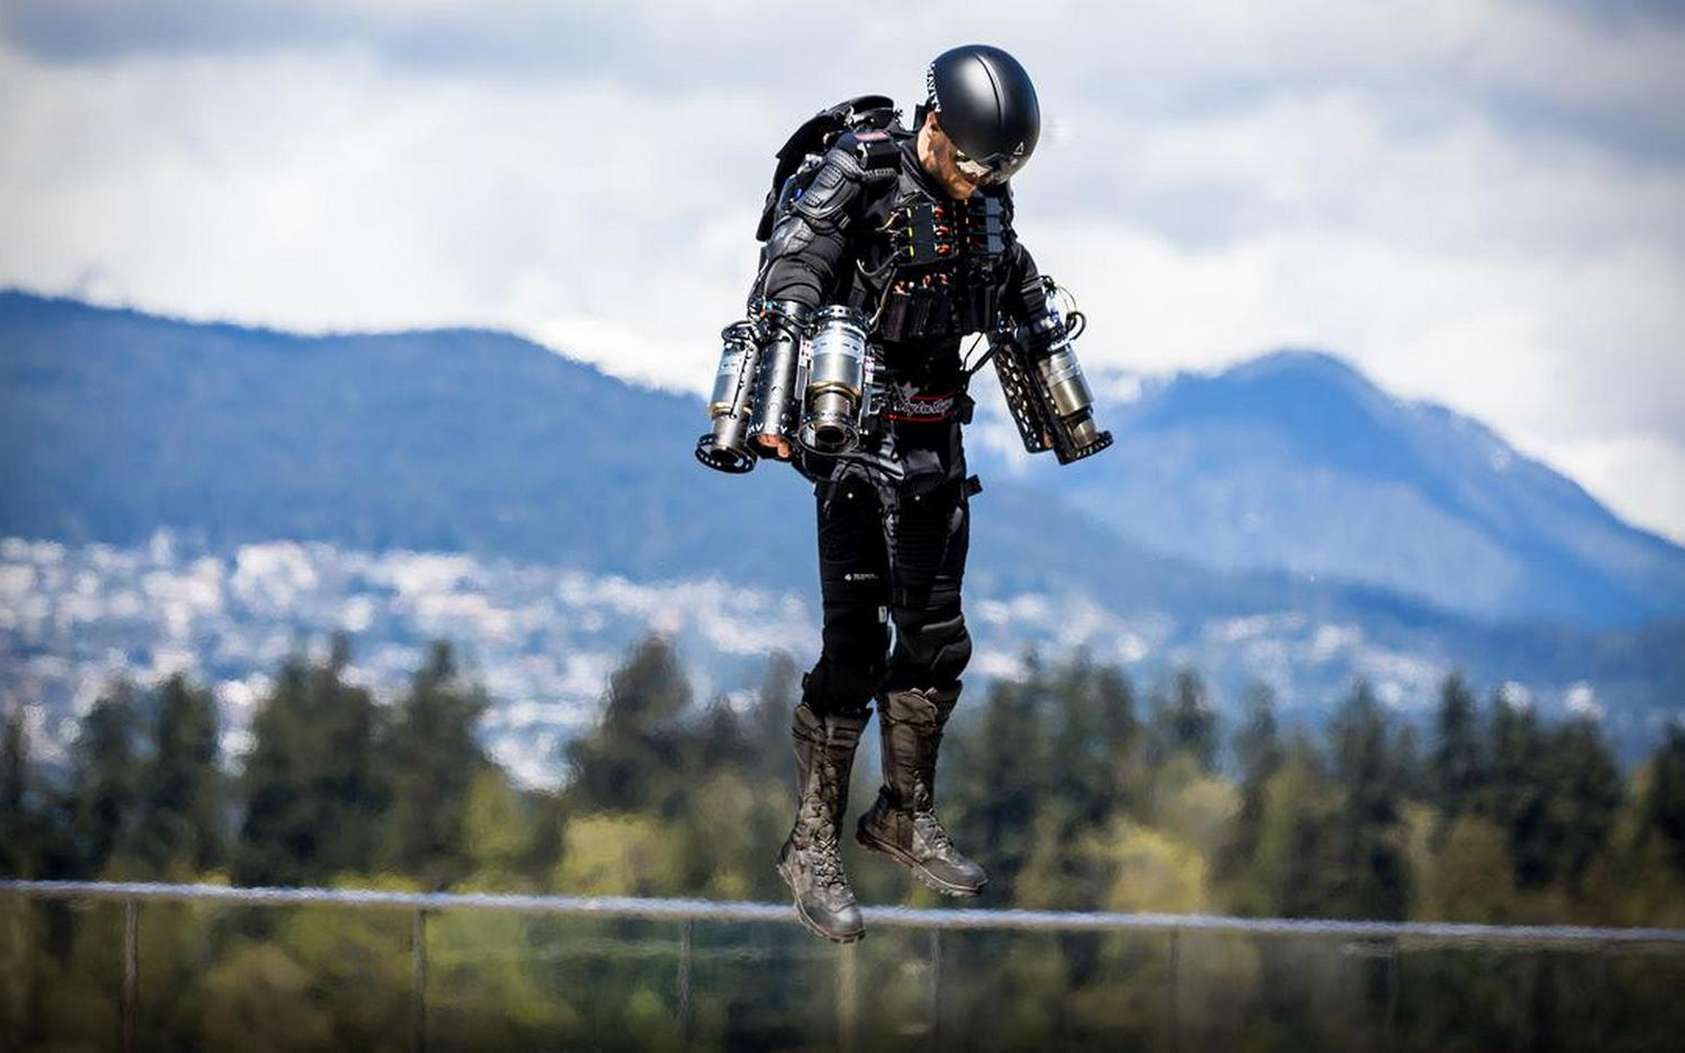 Voici Richard Browning en pleine action lors de sa tentative de record du monde de vitesse en jetpack. Un vrai Iron Man ! © Guinness World Records